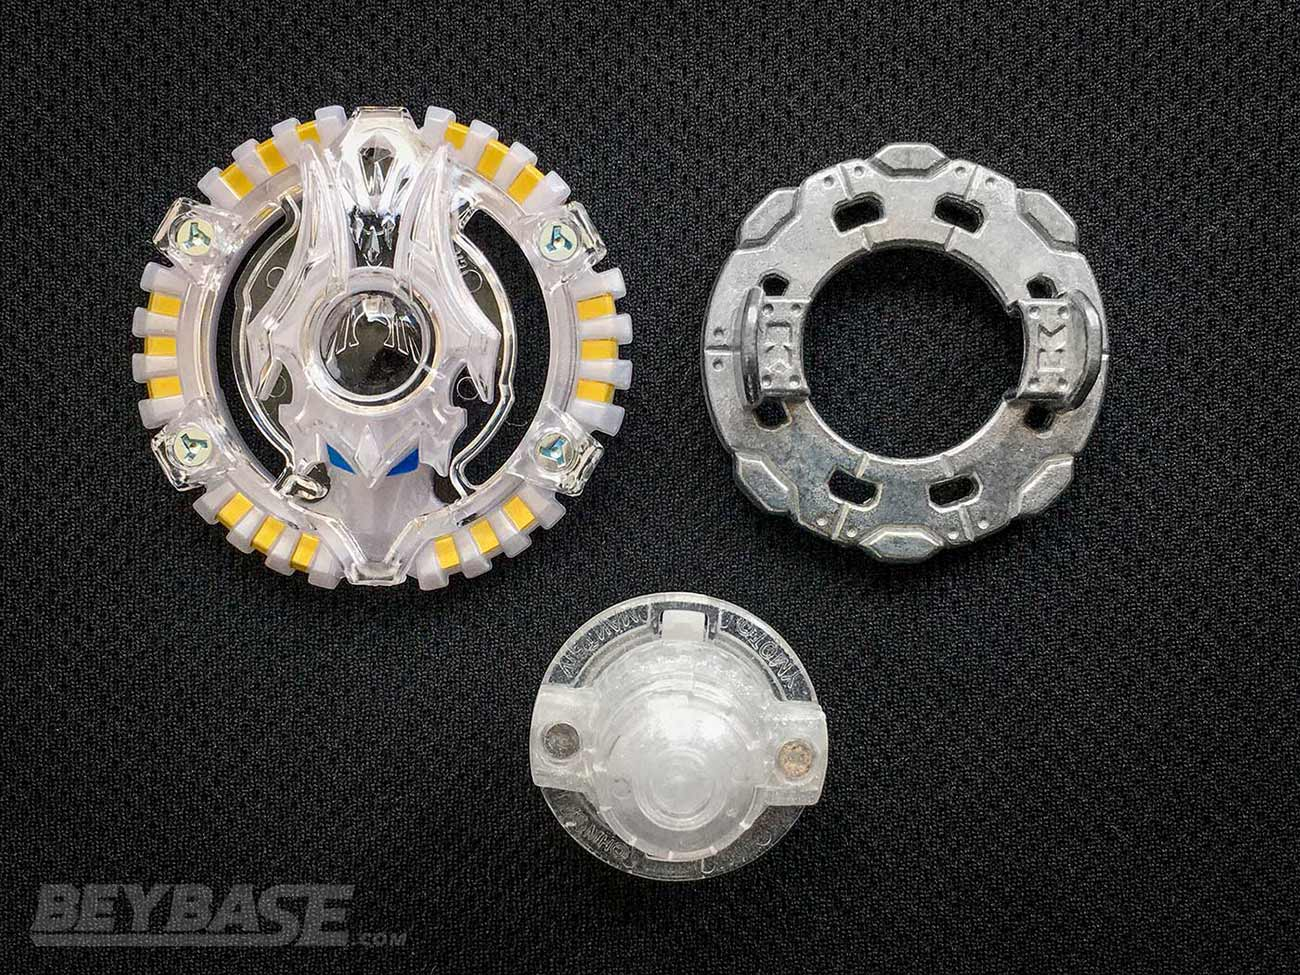 beyblade burst classic stamina combo parts: acid anubis layer, knuckle disk, and revolve driver